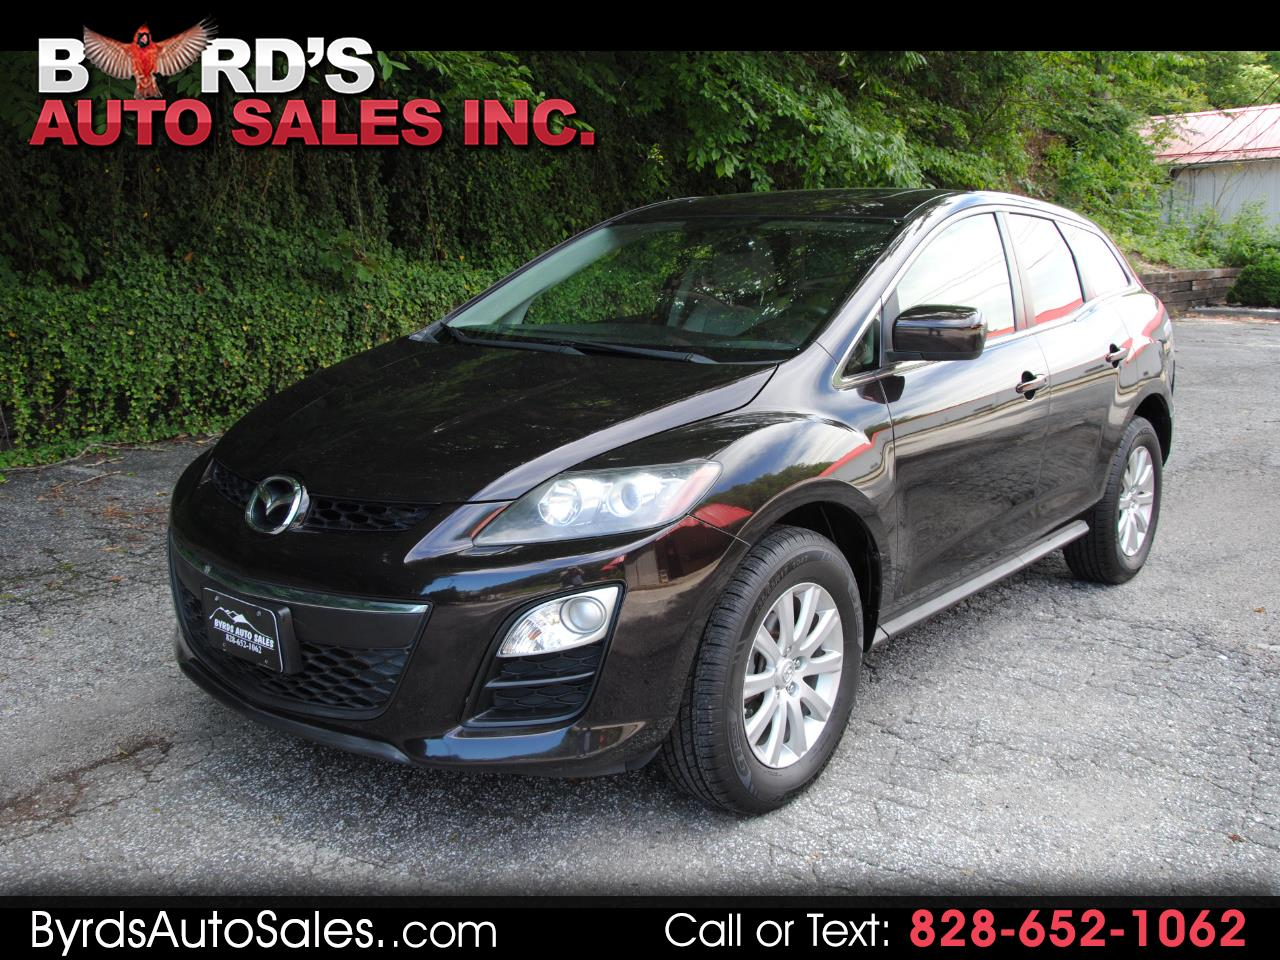 2012 Mazda CX-7 FWD 4dr i Touring